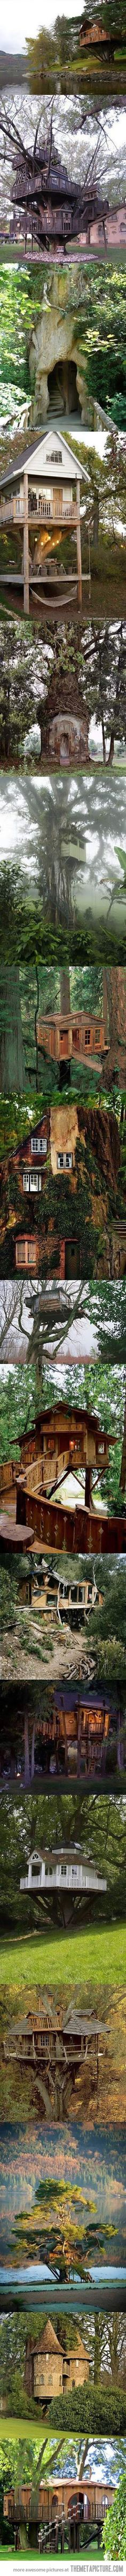 I need a grownup tree house…